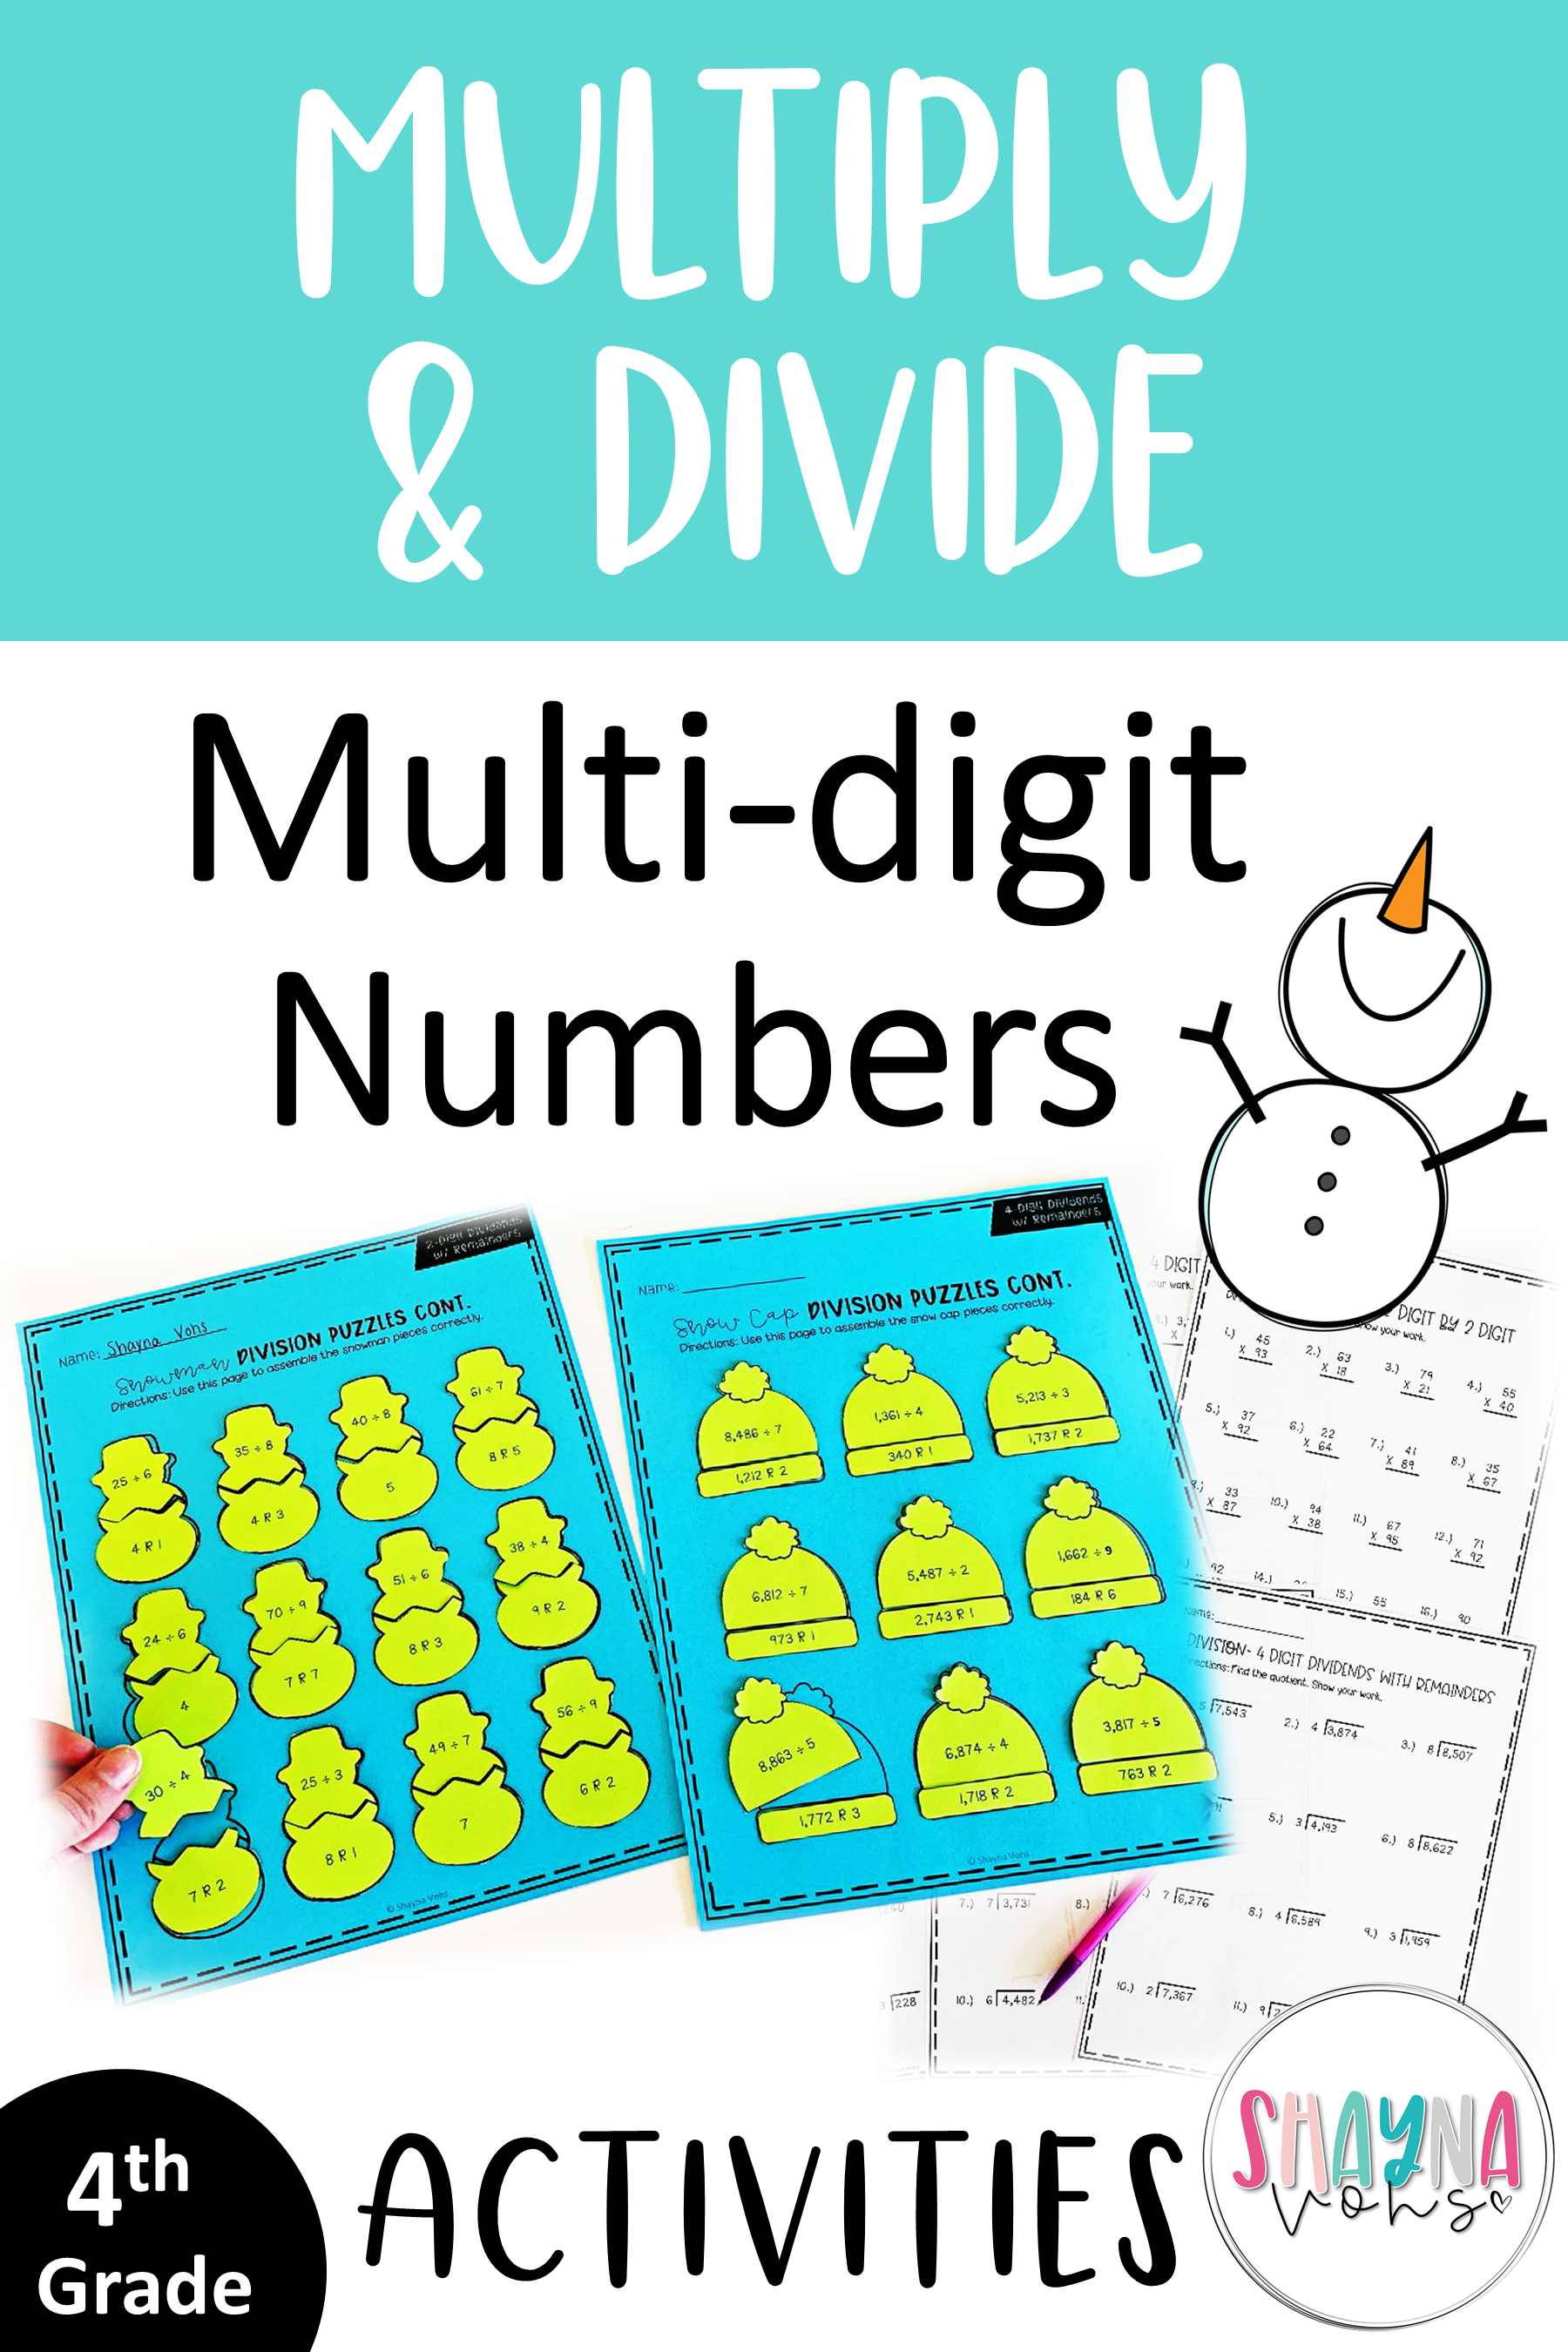 Winter Multiplication And Division Puzzles And Worksheets Multiplication And Division Math Division Worksheets 4th Grade Math [ 2700 x 1800 Pixel ]